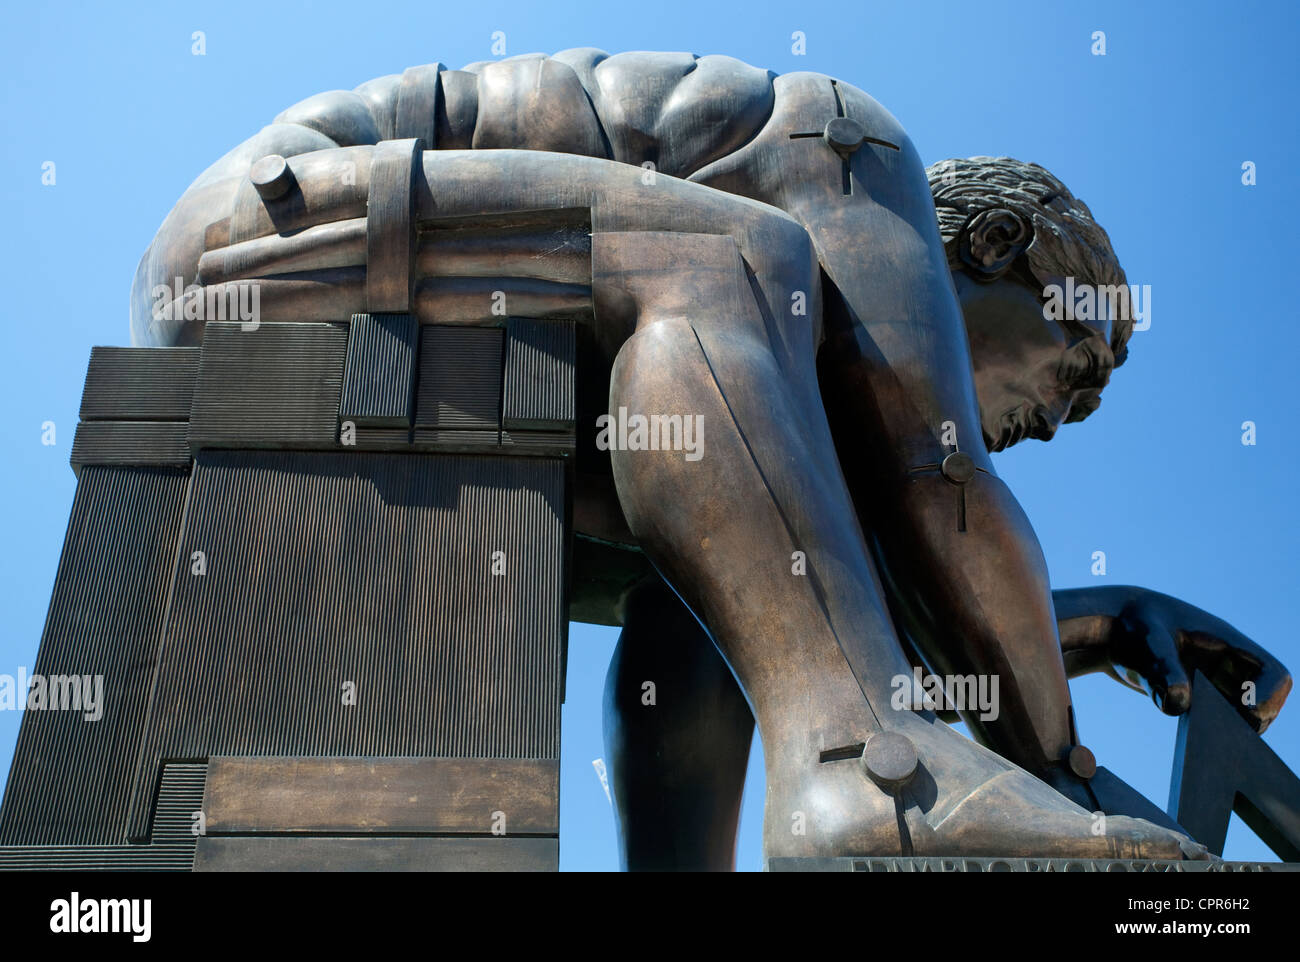 Sculpture of Isaac Newton by Eduardo Paolozzi at British Museum, London - Stock Image